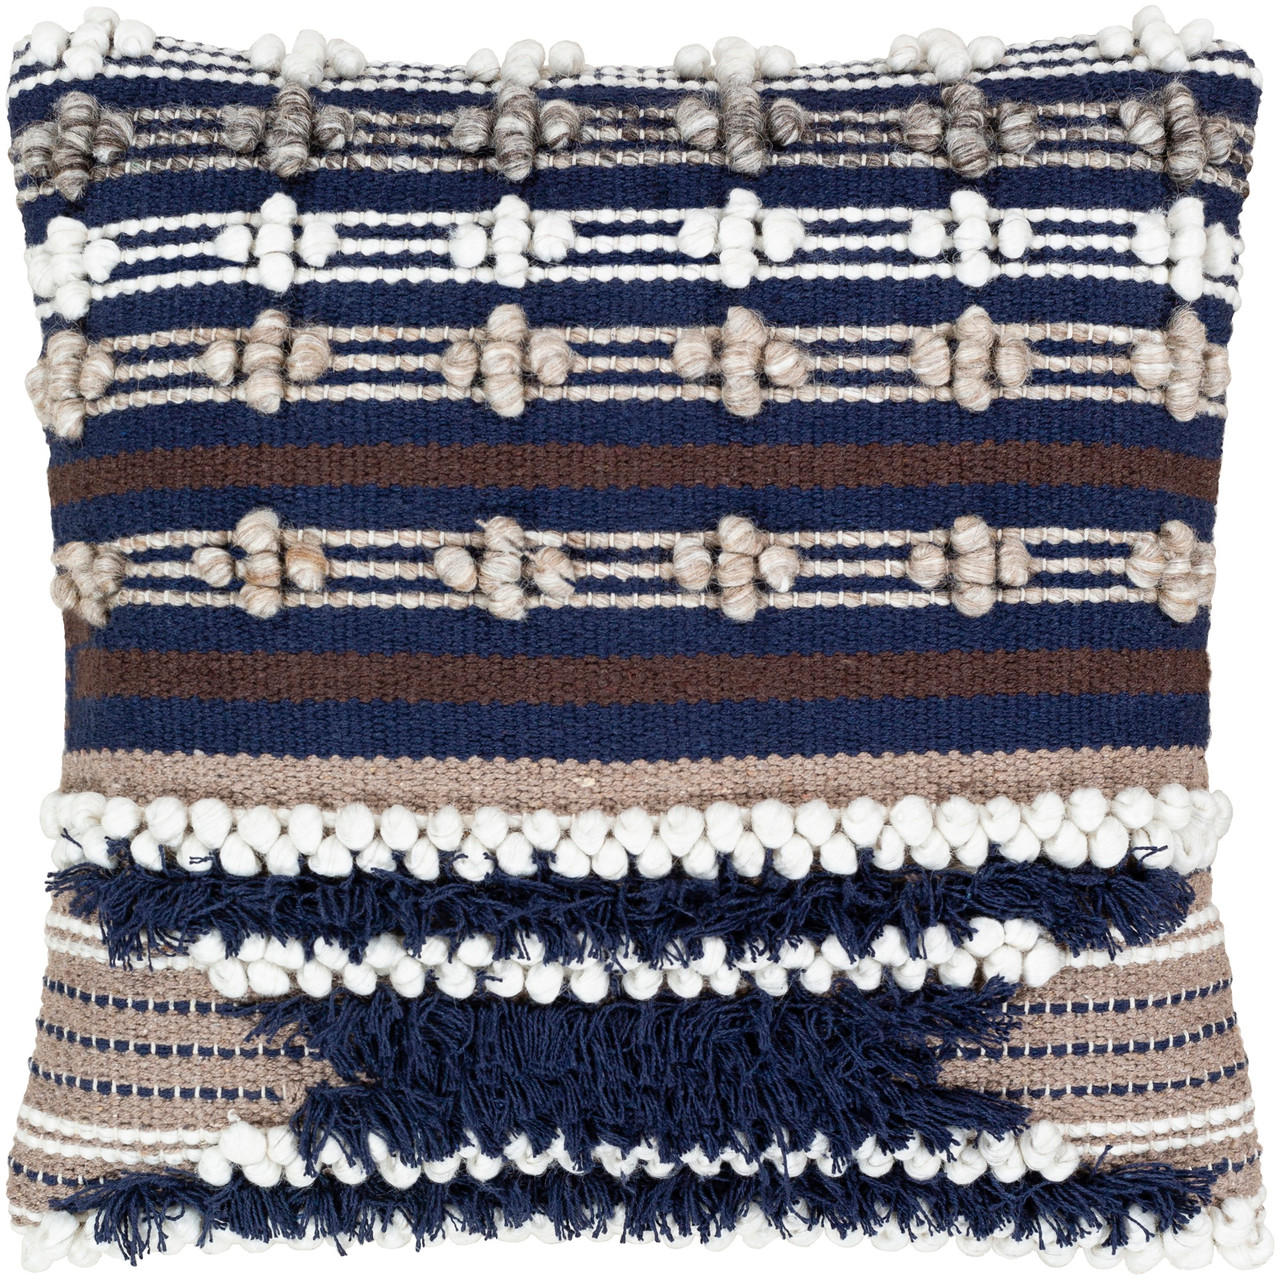 22 Navy Blue Brown With Tassels Bobbles Square Throw Pillow Cover Christmas Central